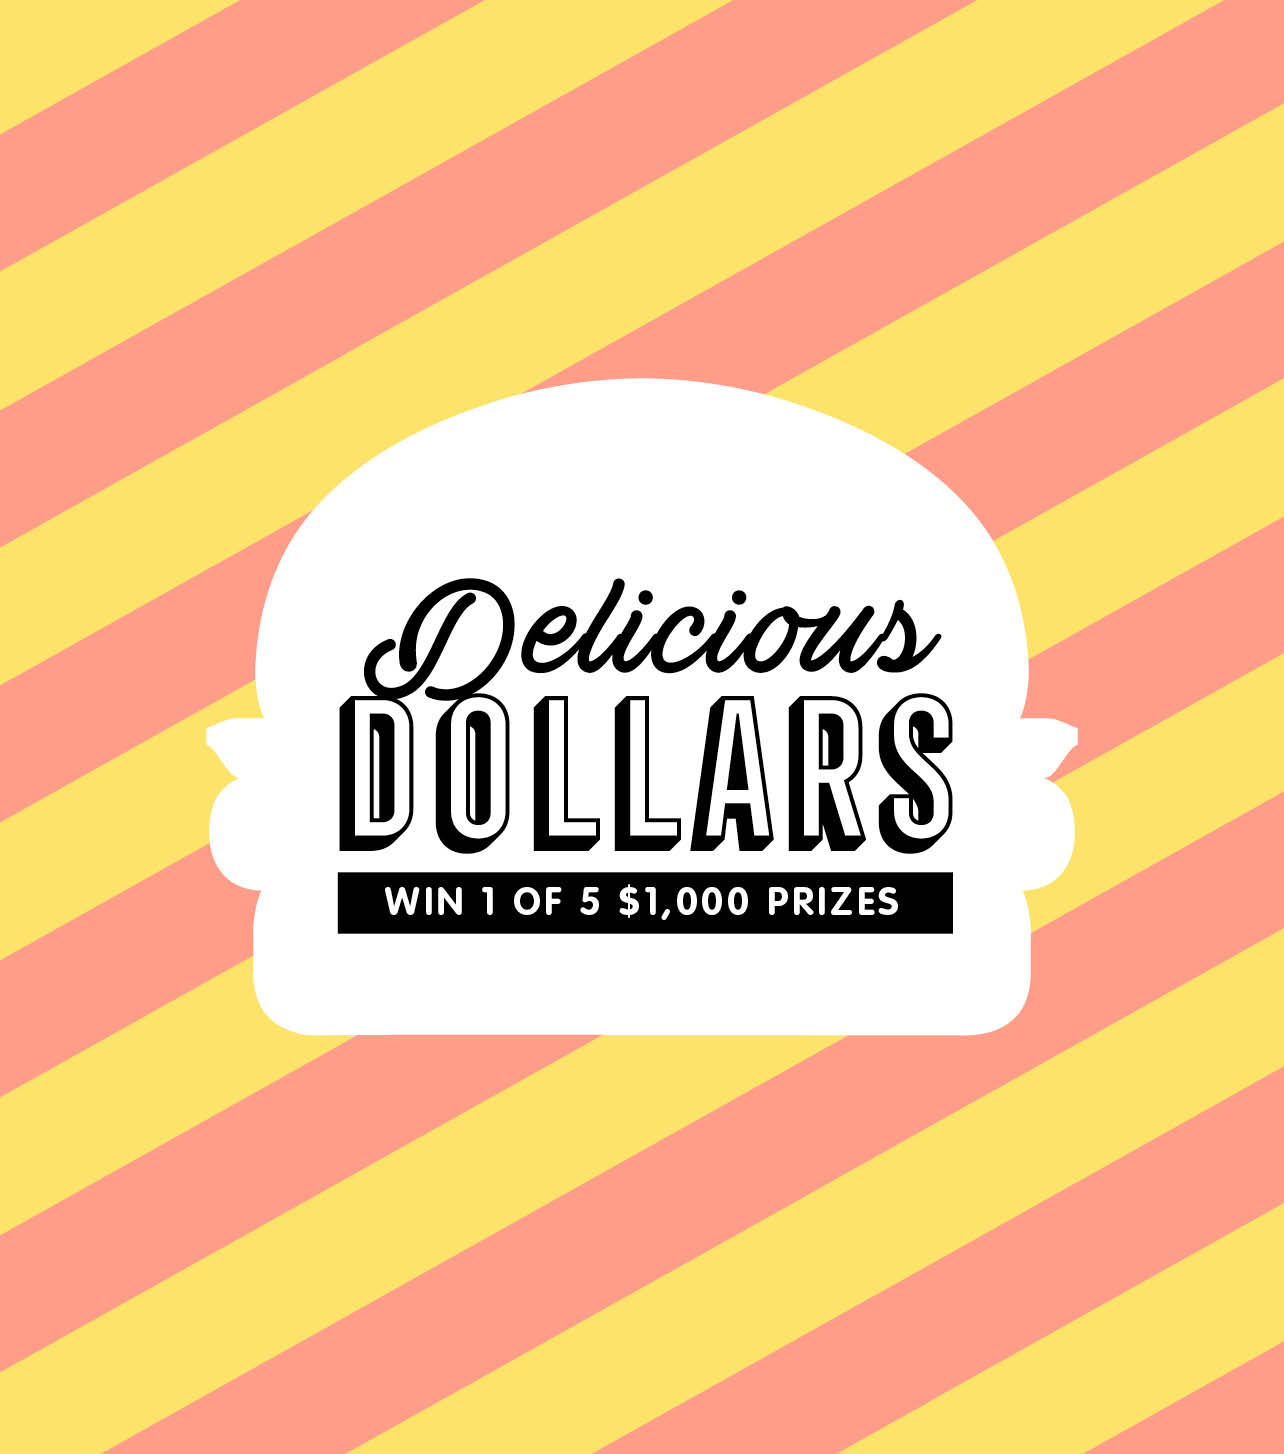 CH4779_Delicious Dollars Digital Activation_Web Tiles_642x727px